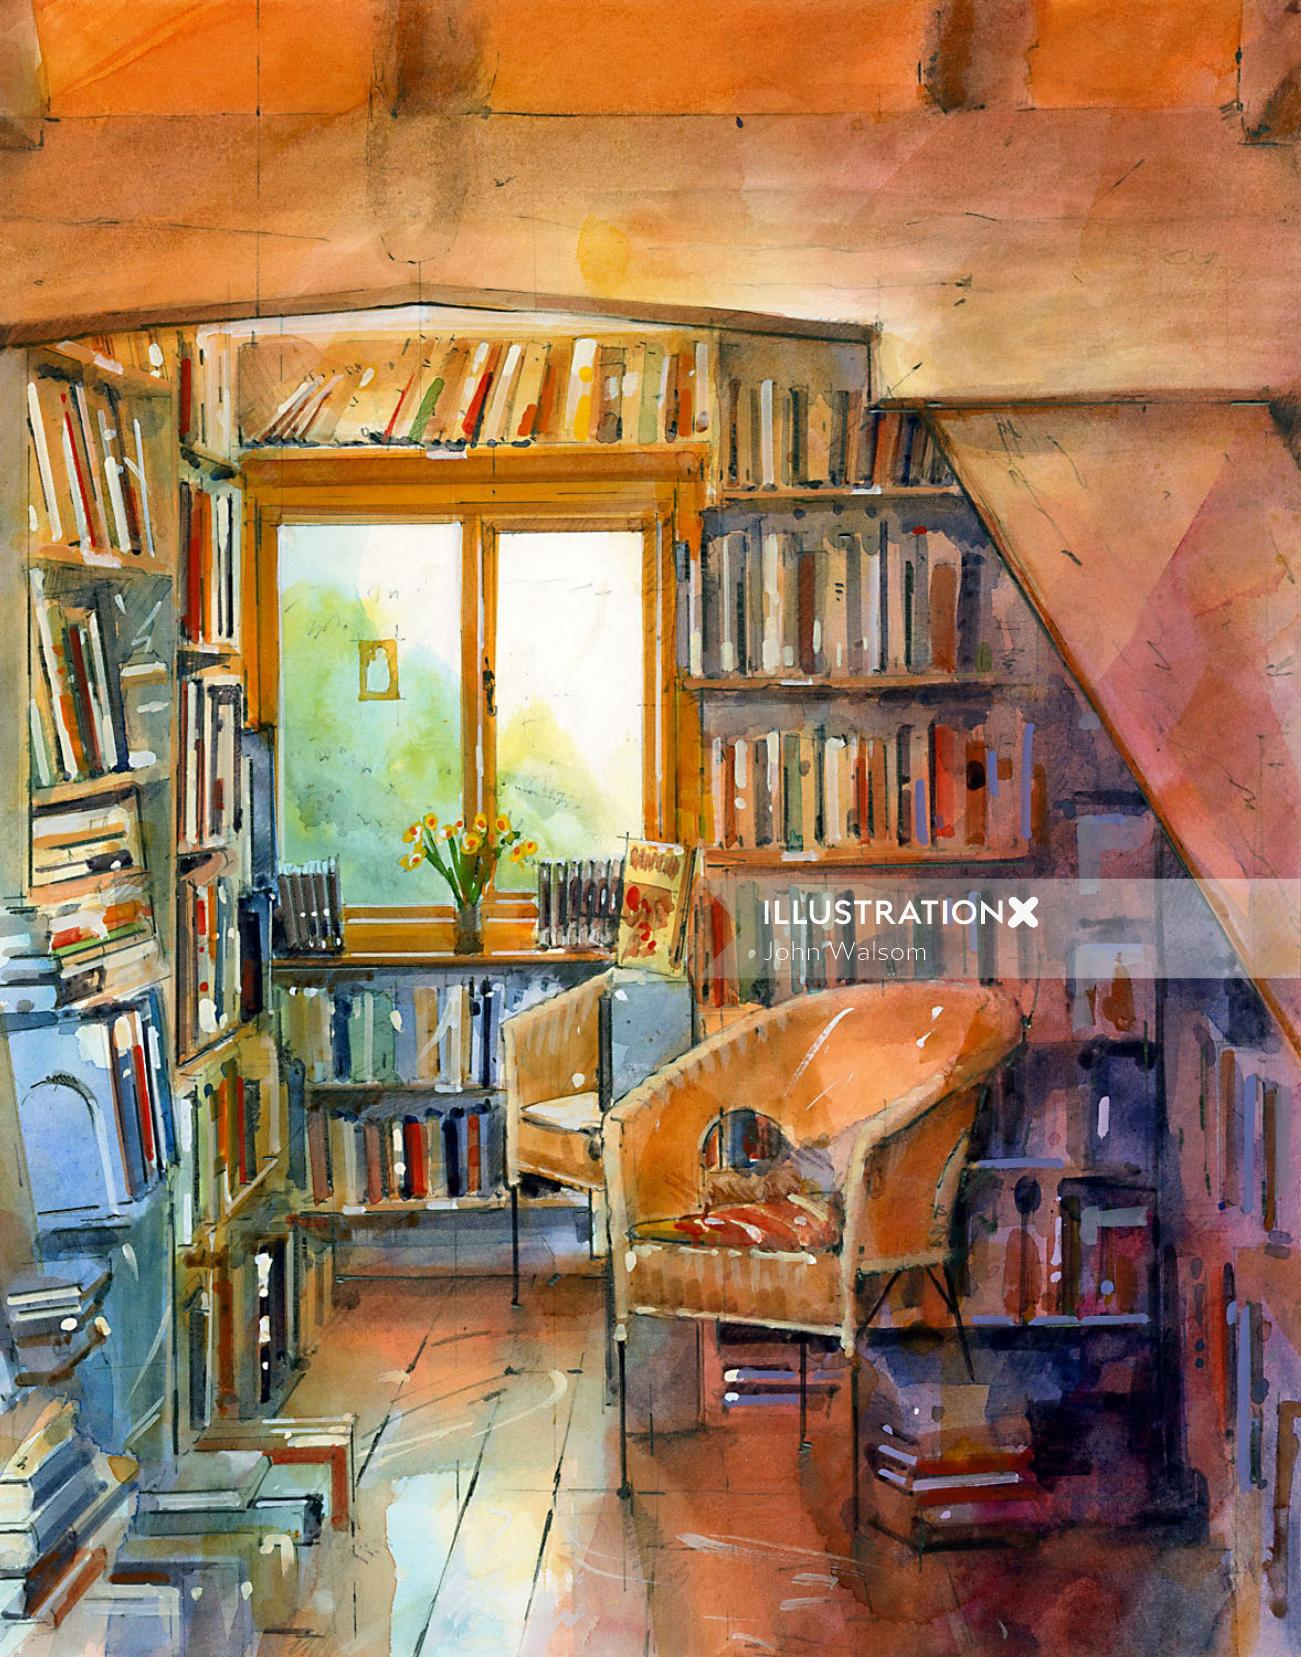 Illustration of bookshop interior